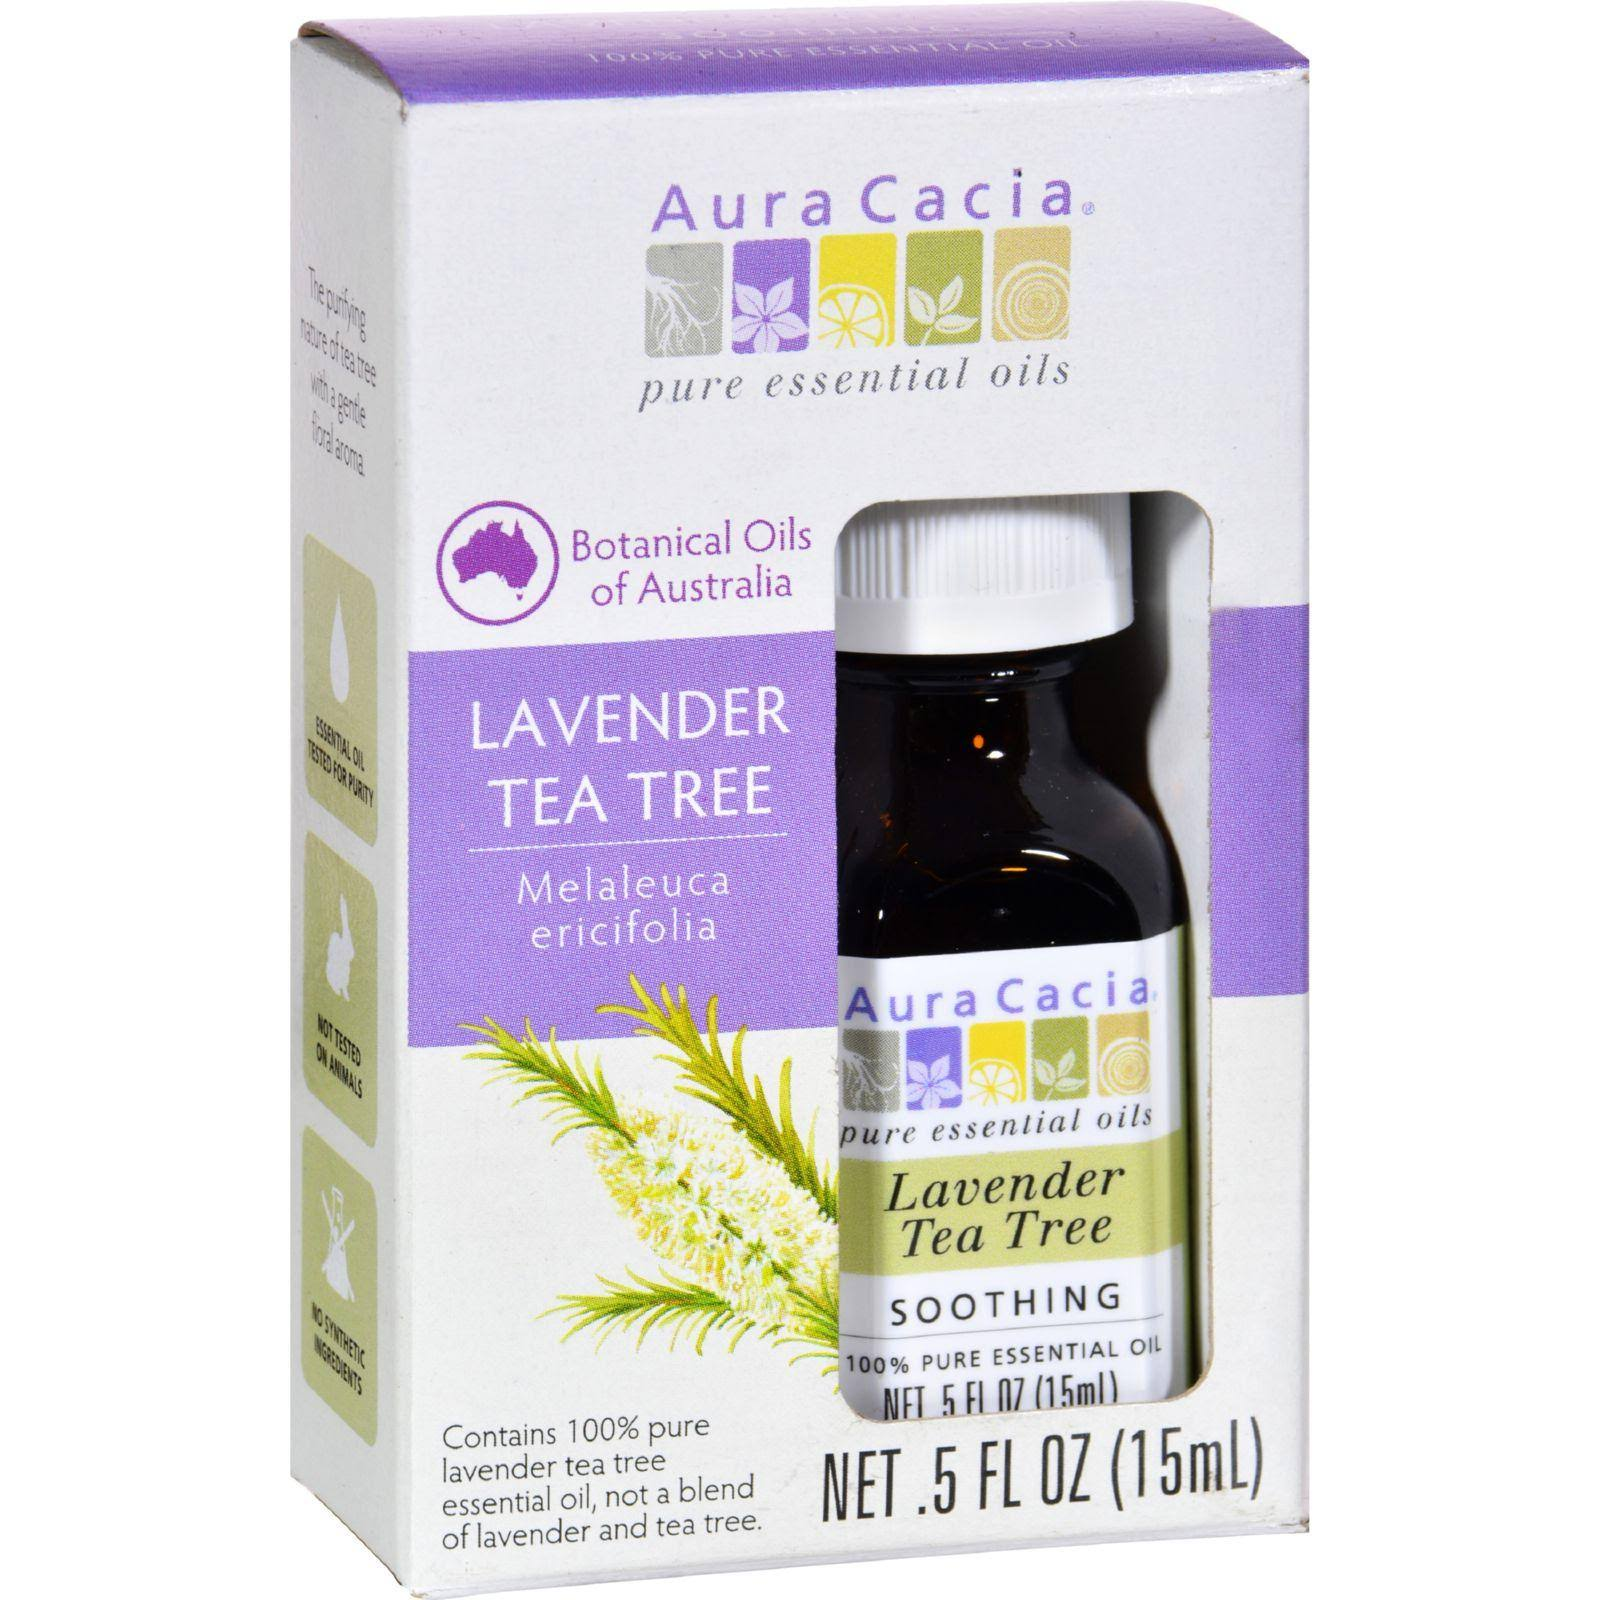 Aura Cacia Pure Essential Oil - Lavender Tea Tree, 15ml